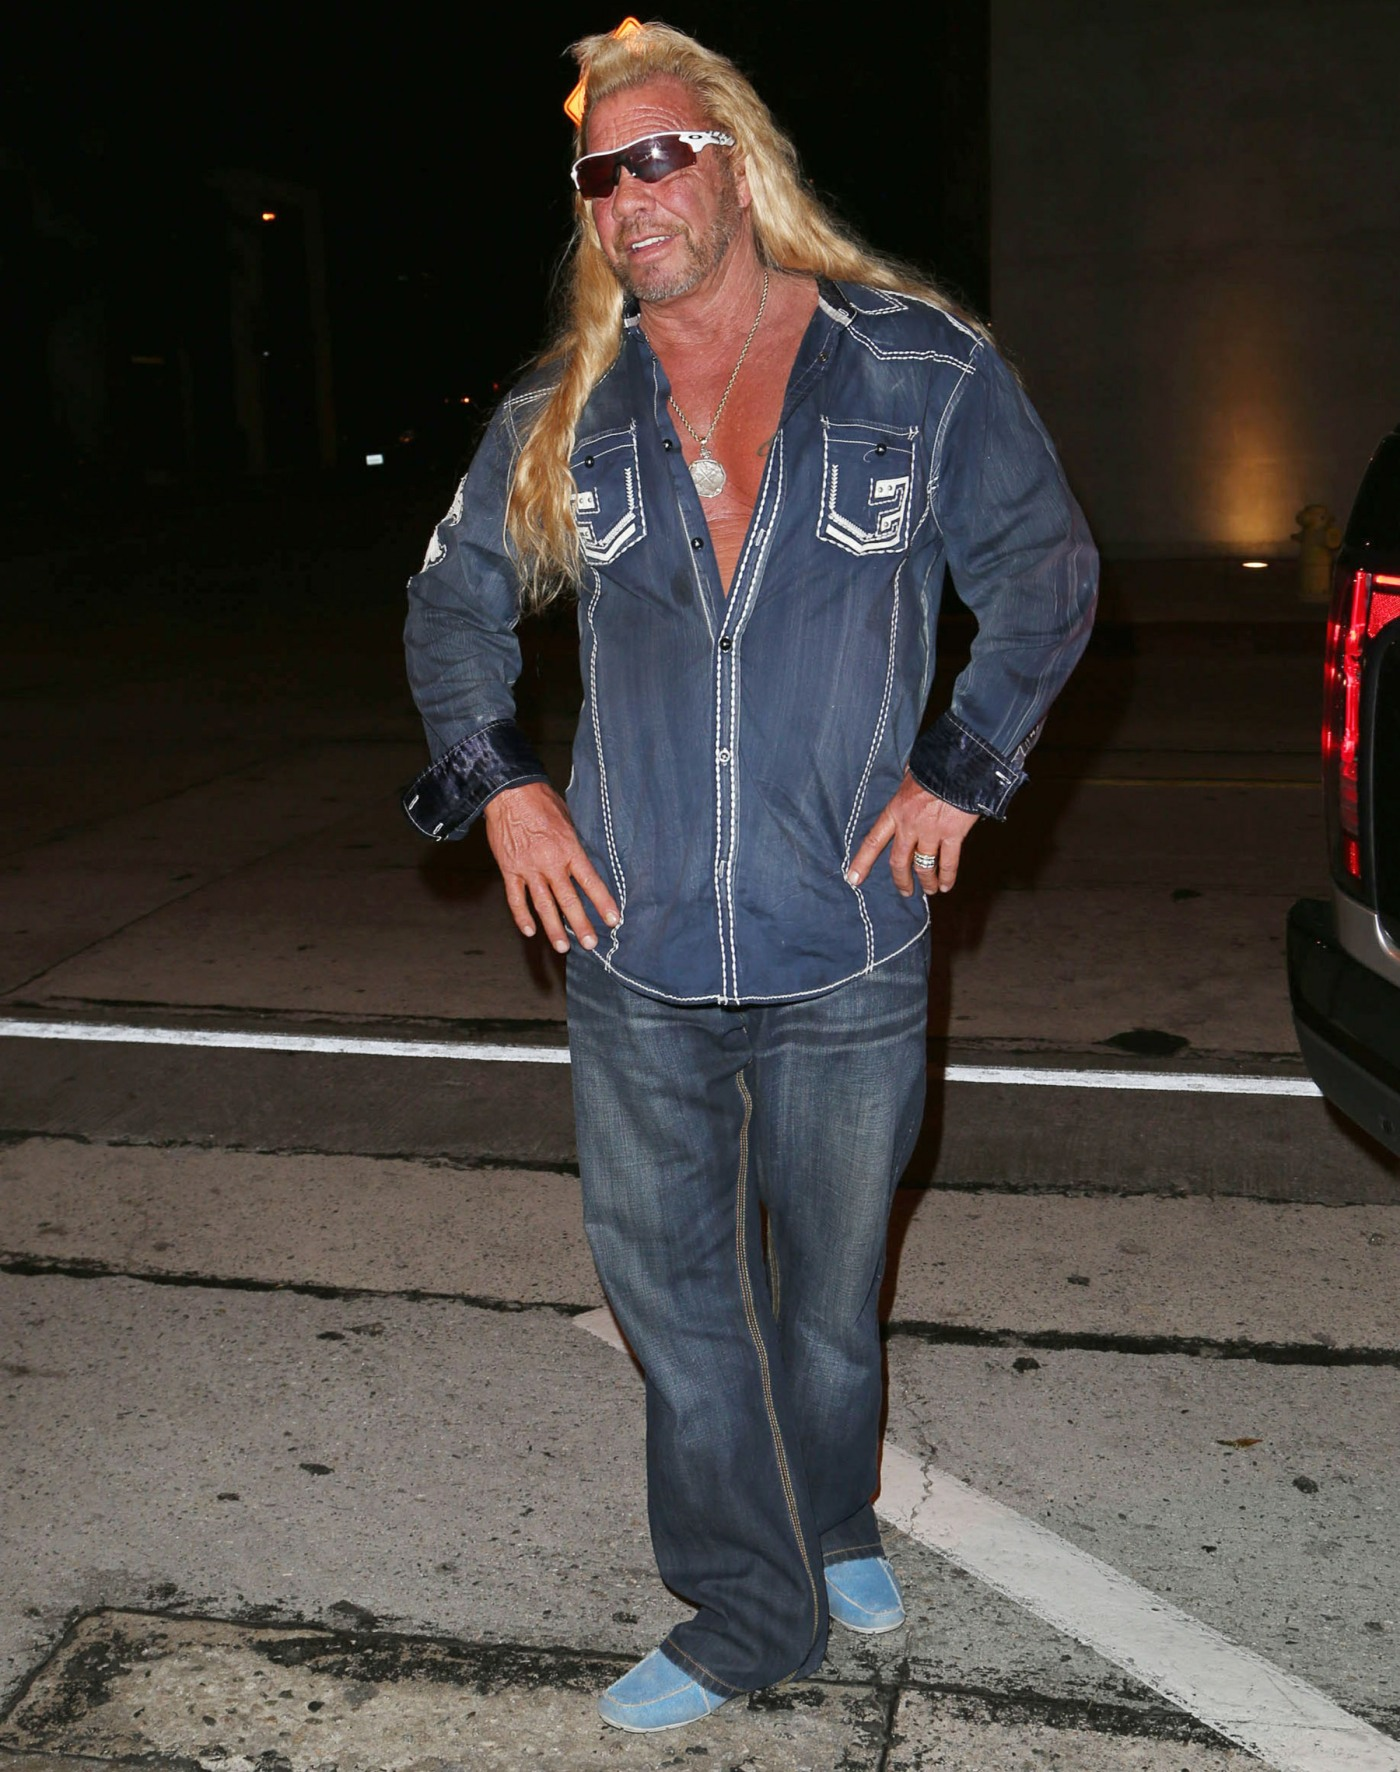 Dog the Bounty Hunter on using the n-word: 'I have more Black friends